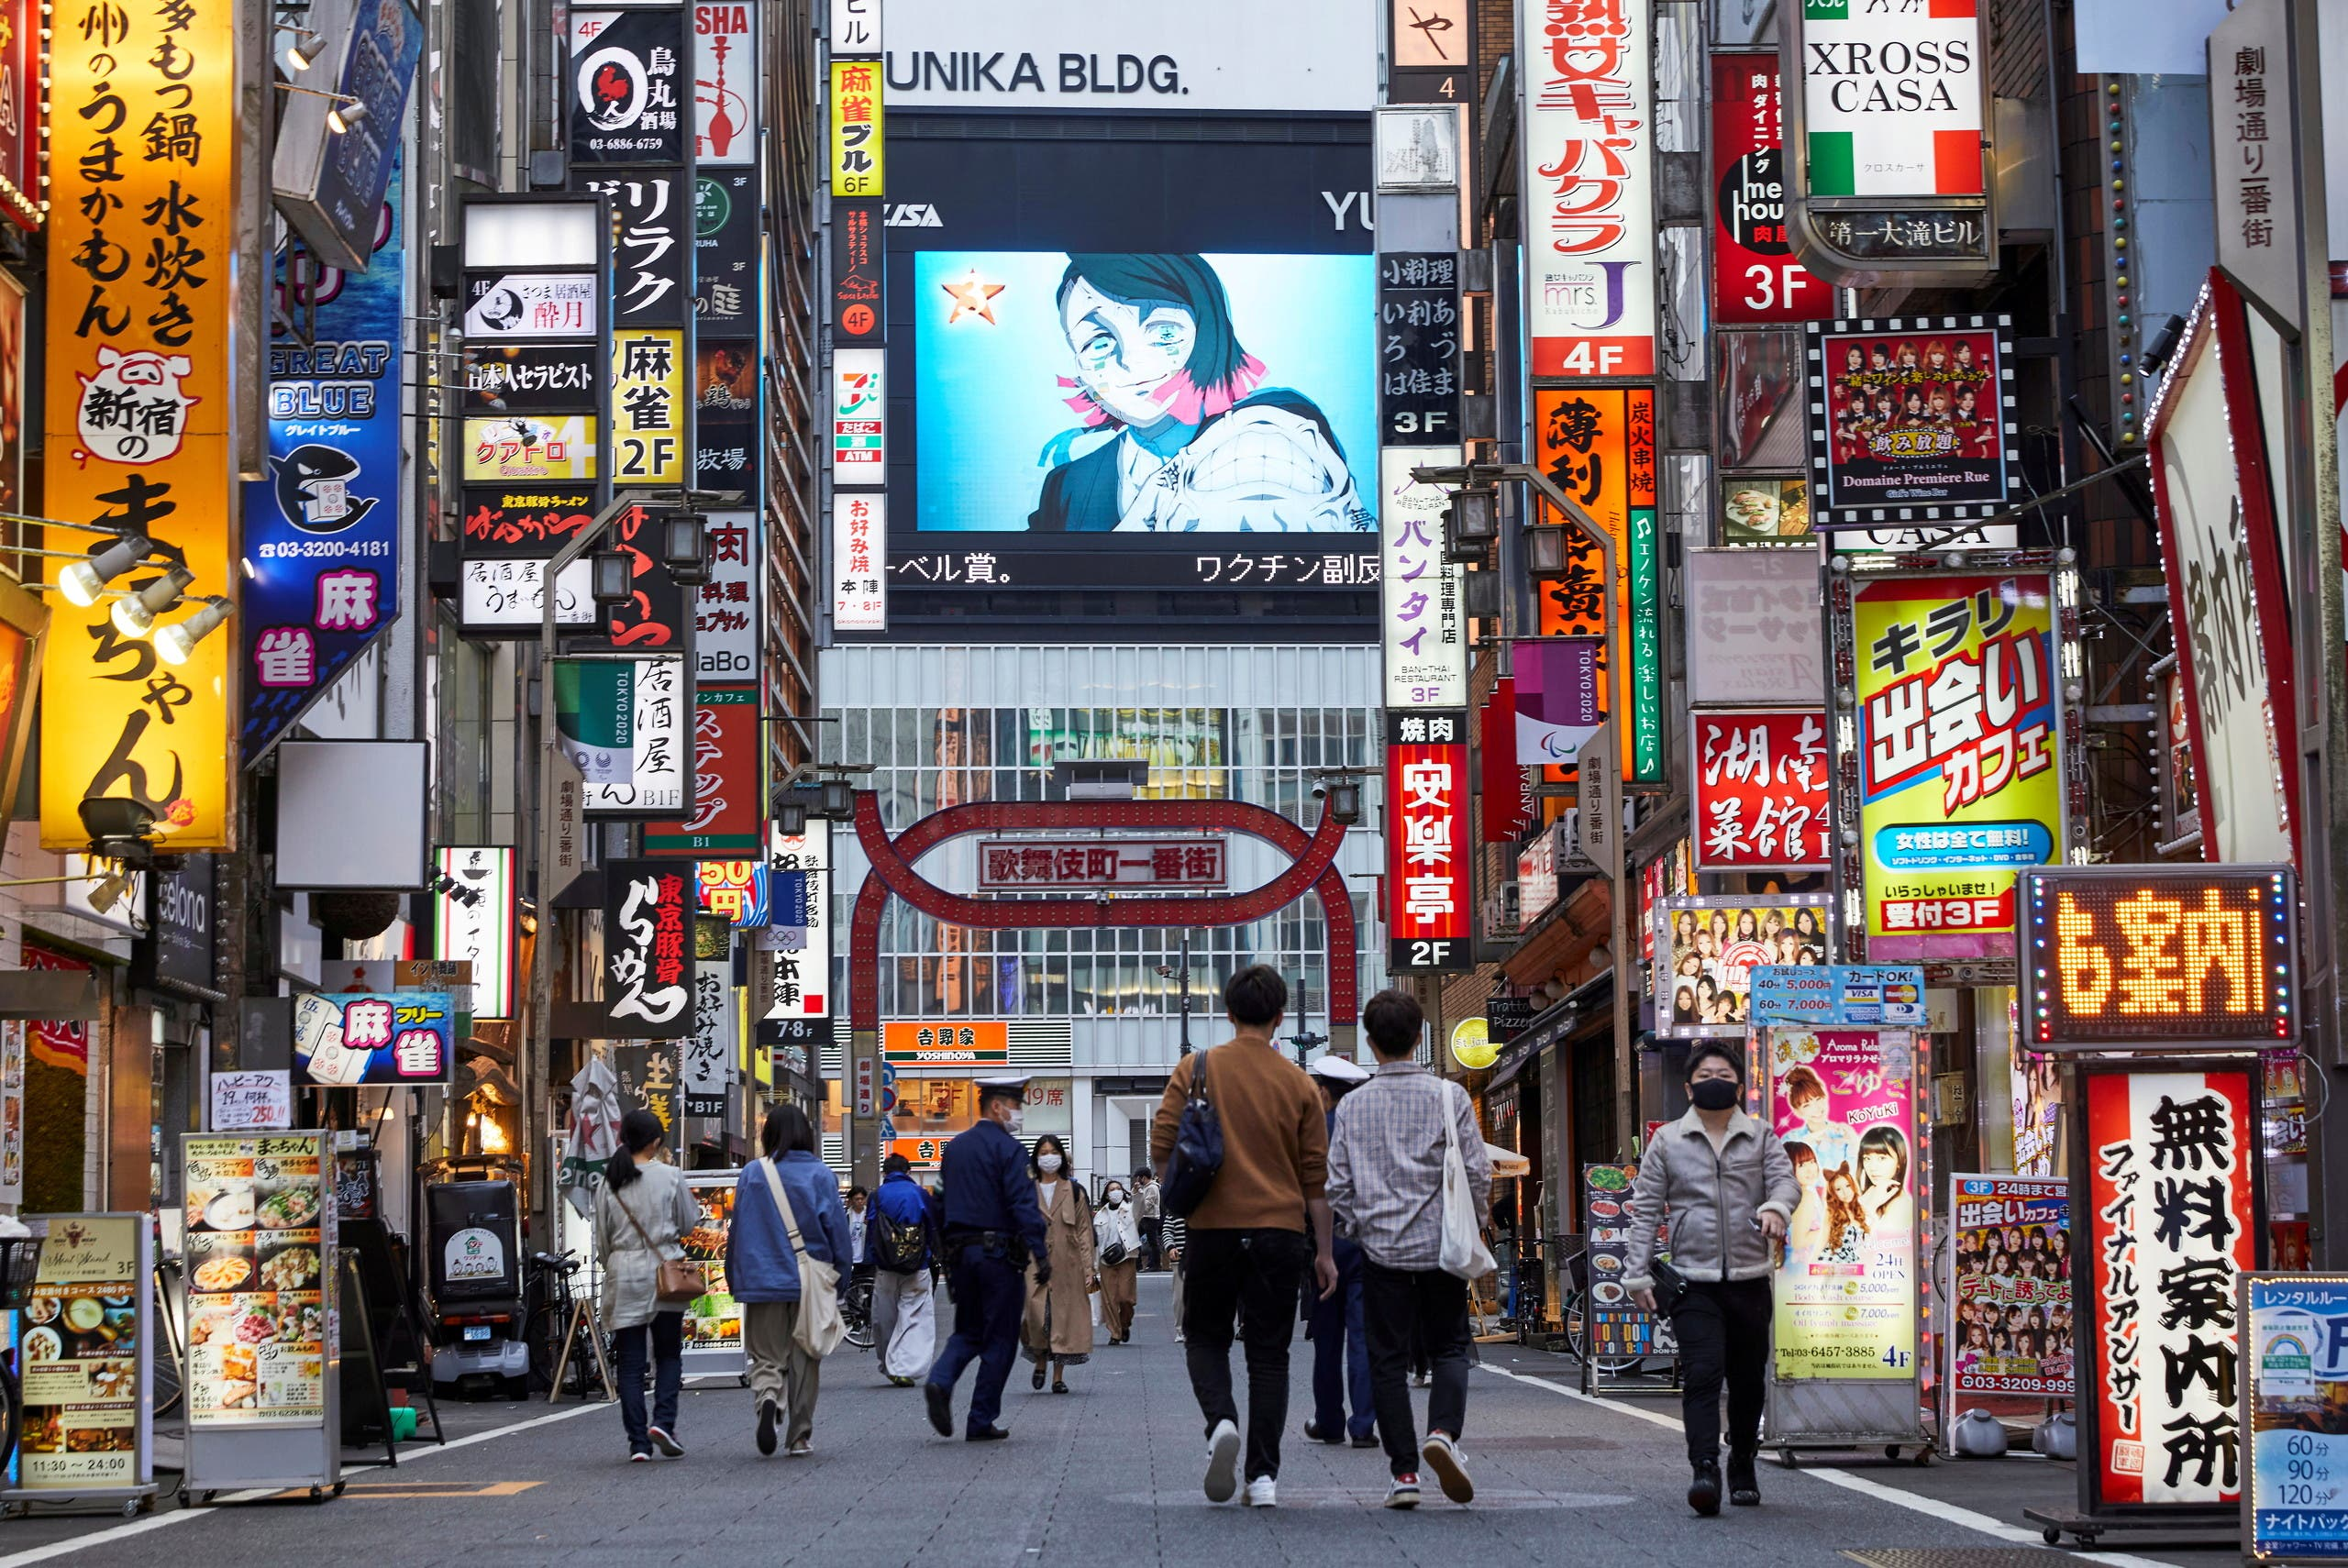 Passersby wearing protective masks stroll through Kabukicho entertainment district during the COVID-19 pandemic in Tokyo, Japan April 6, 2021. Picture taken April 6, 2021. (File Photo: Reuters)